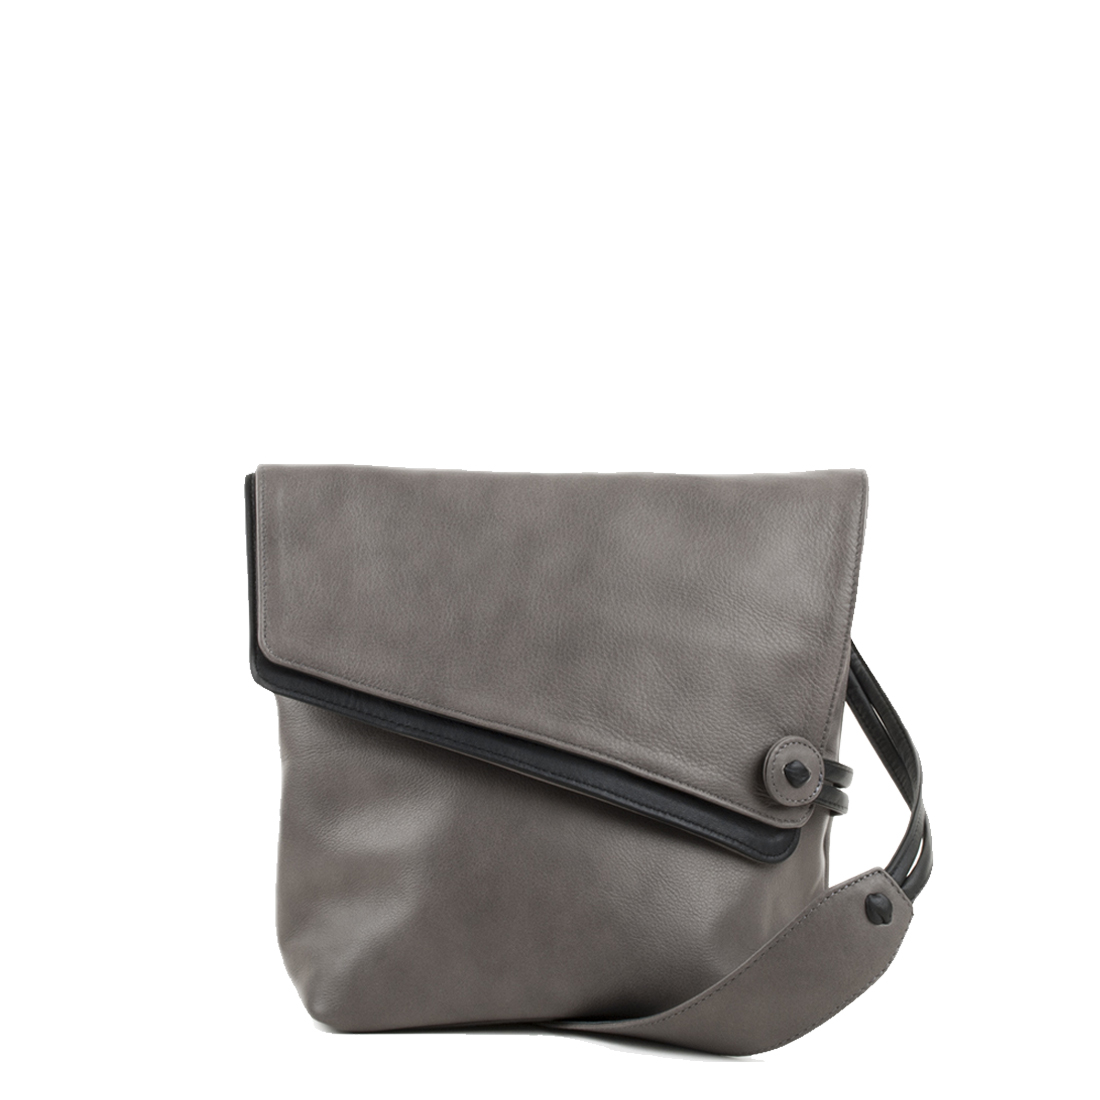 Louise Grigio Across Body Leather Bag